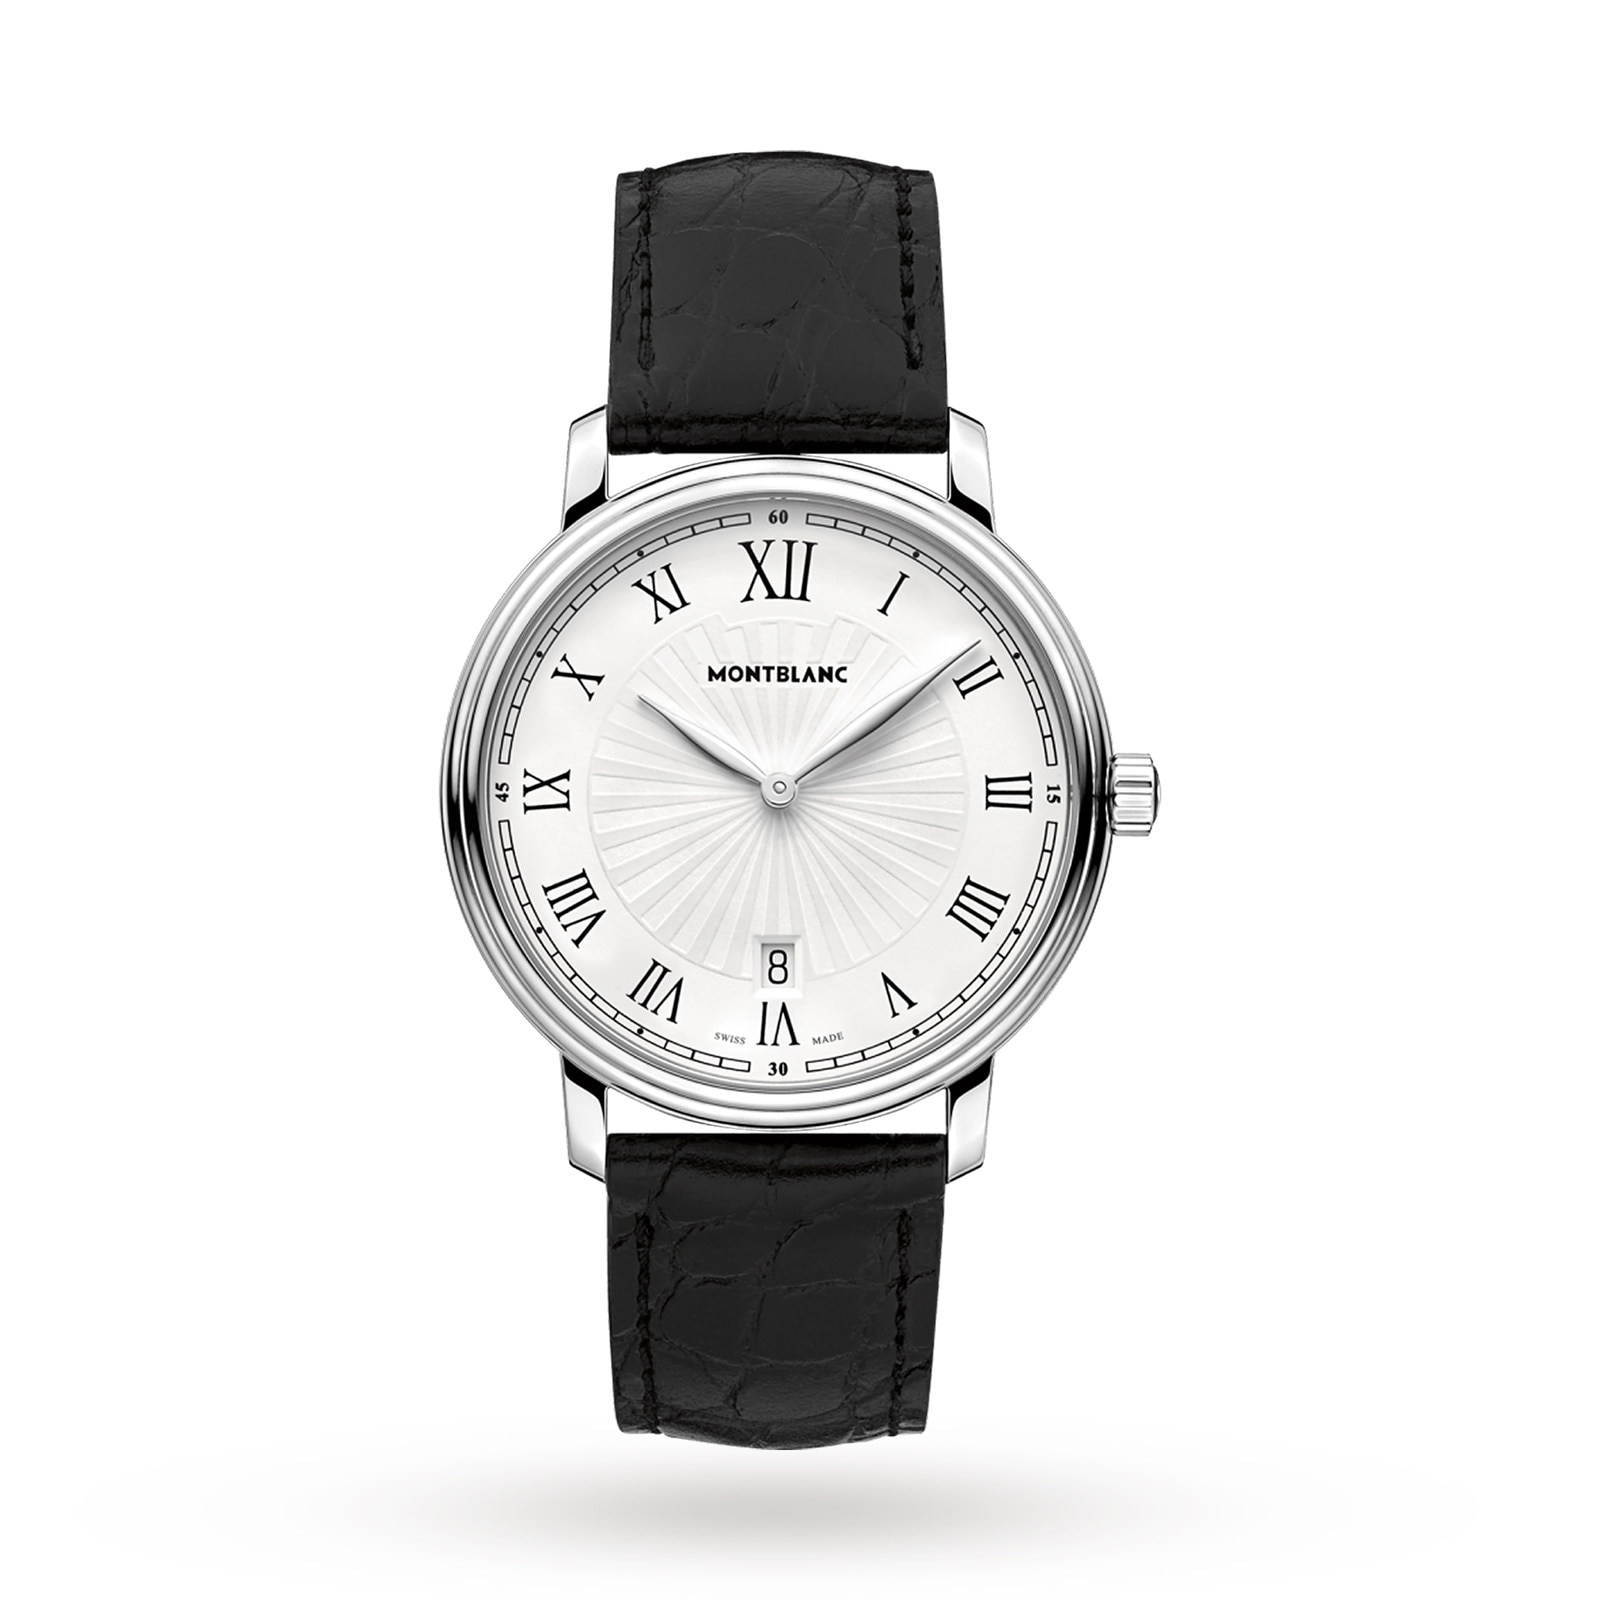 Montblanc Tradition Mens Watch 112633 Mappin And Webb